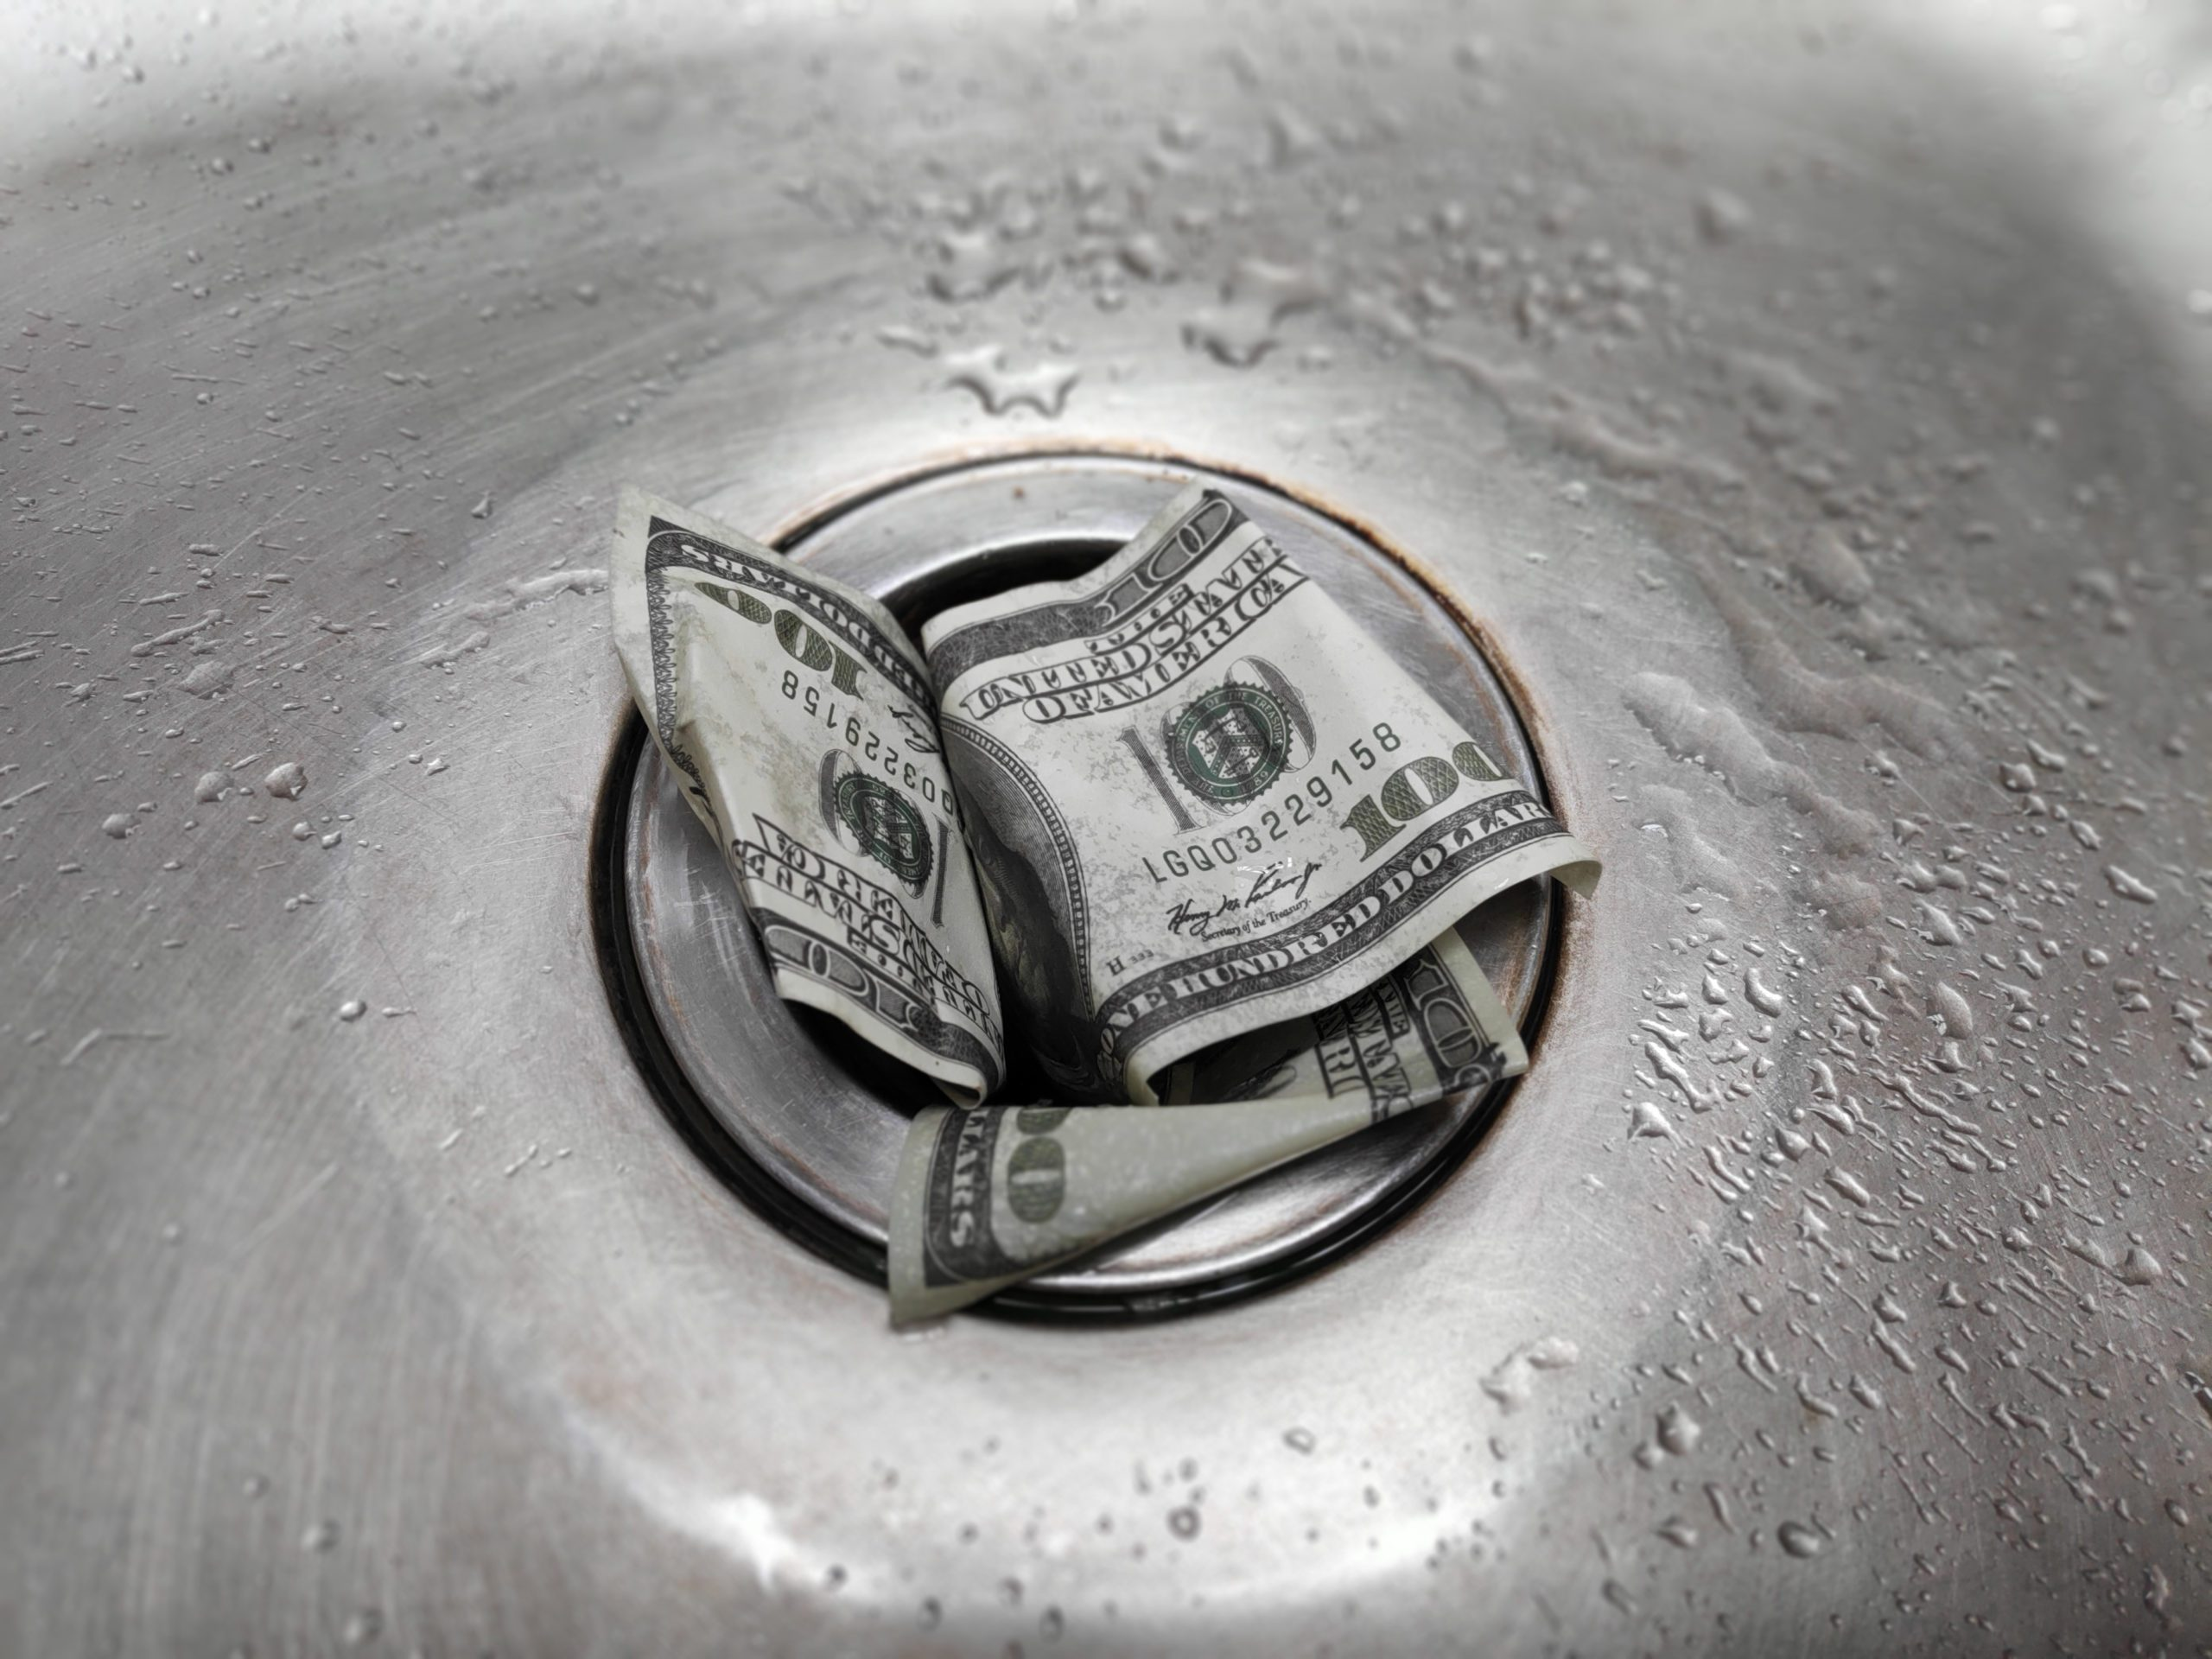 Money is thrown away in the sink. This photo concept illustrates the financial condition of a business that is failing or going bankrupt so that it only wastes money without results.